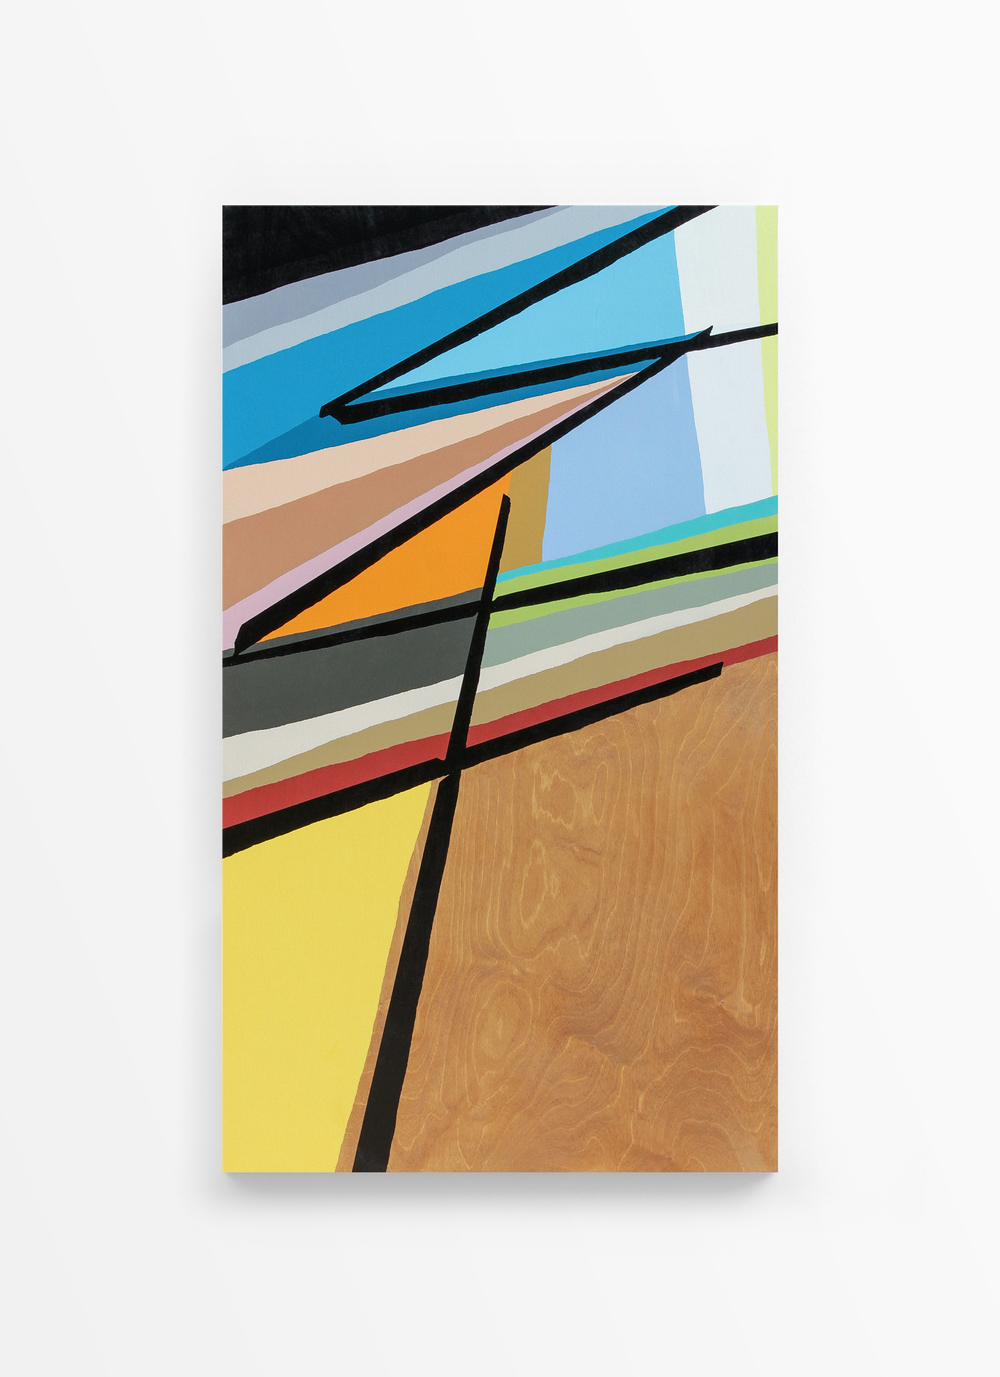 Untitled, 2014 Spray paint on wood 20 x 40 inches